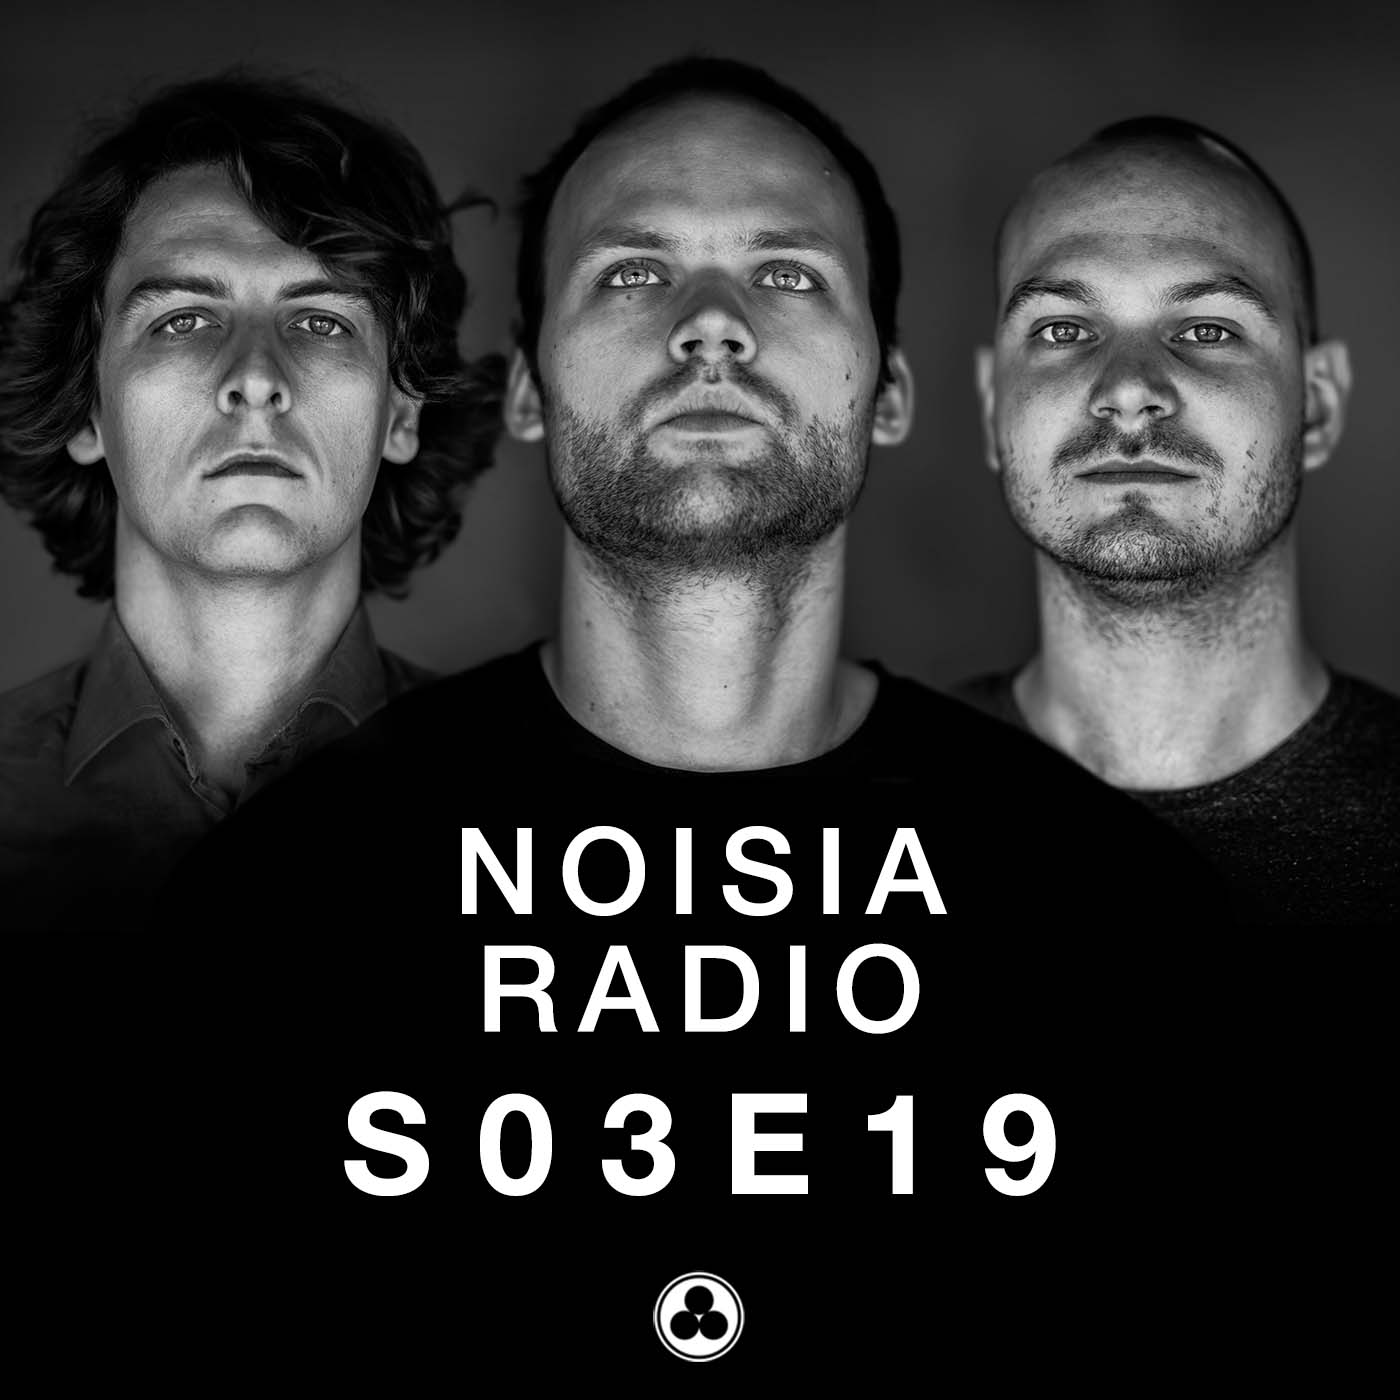 Noisia Radio S03E19